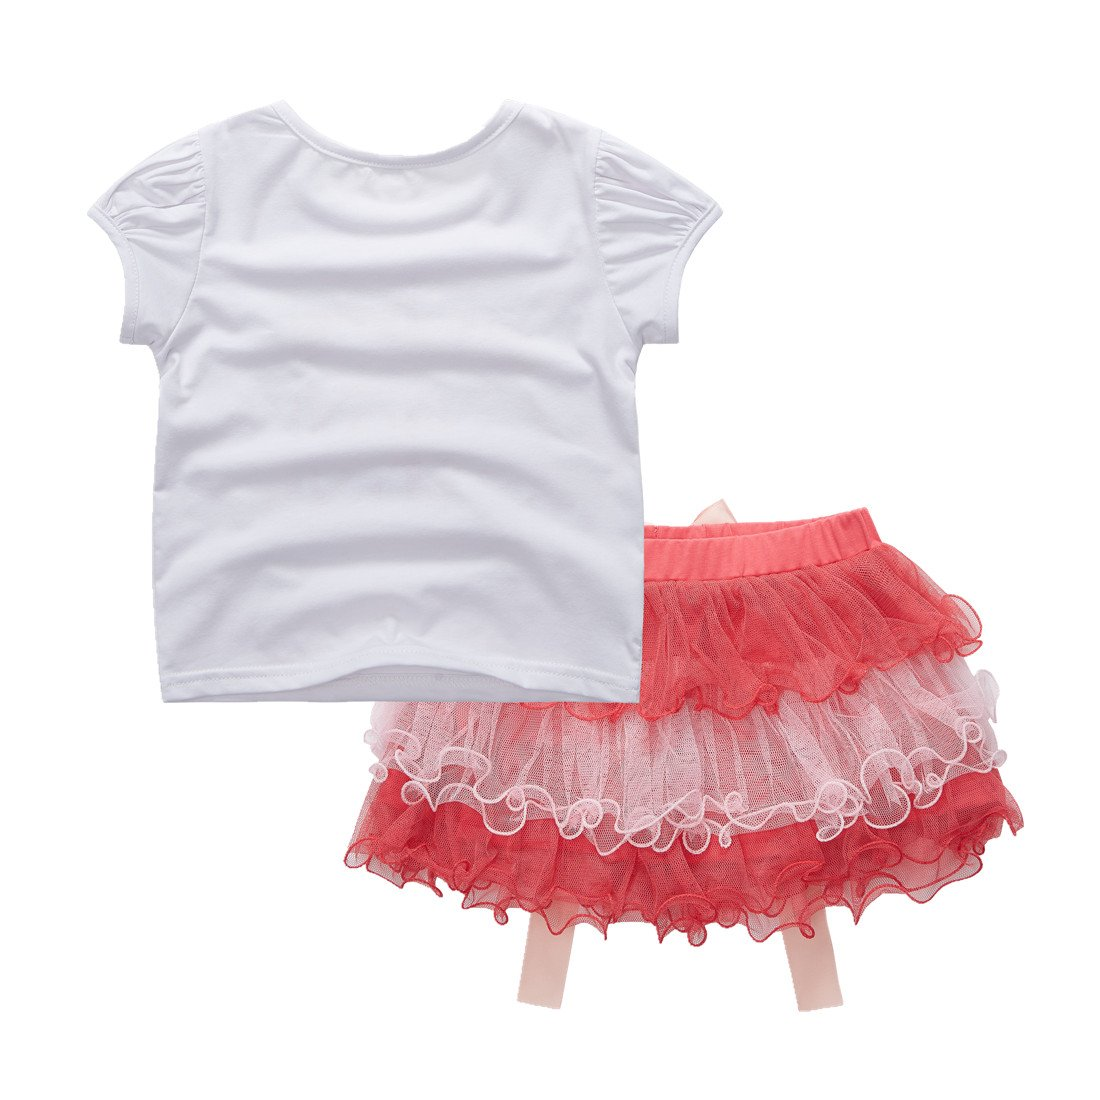 Sooxiwood Little Girls Skirt Sets Birthday Lace